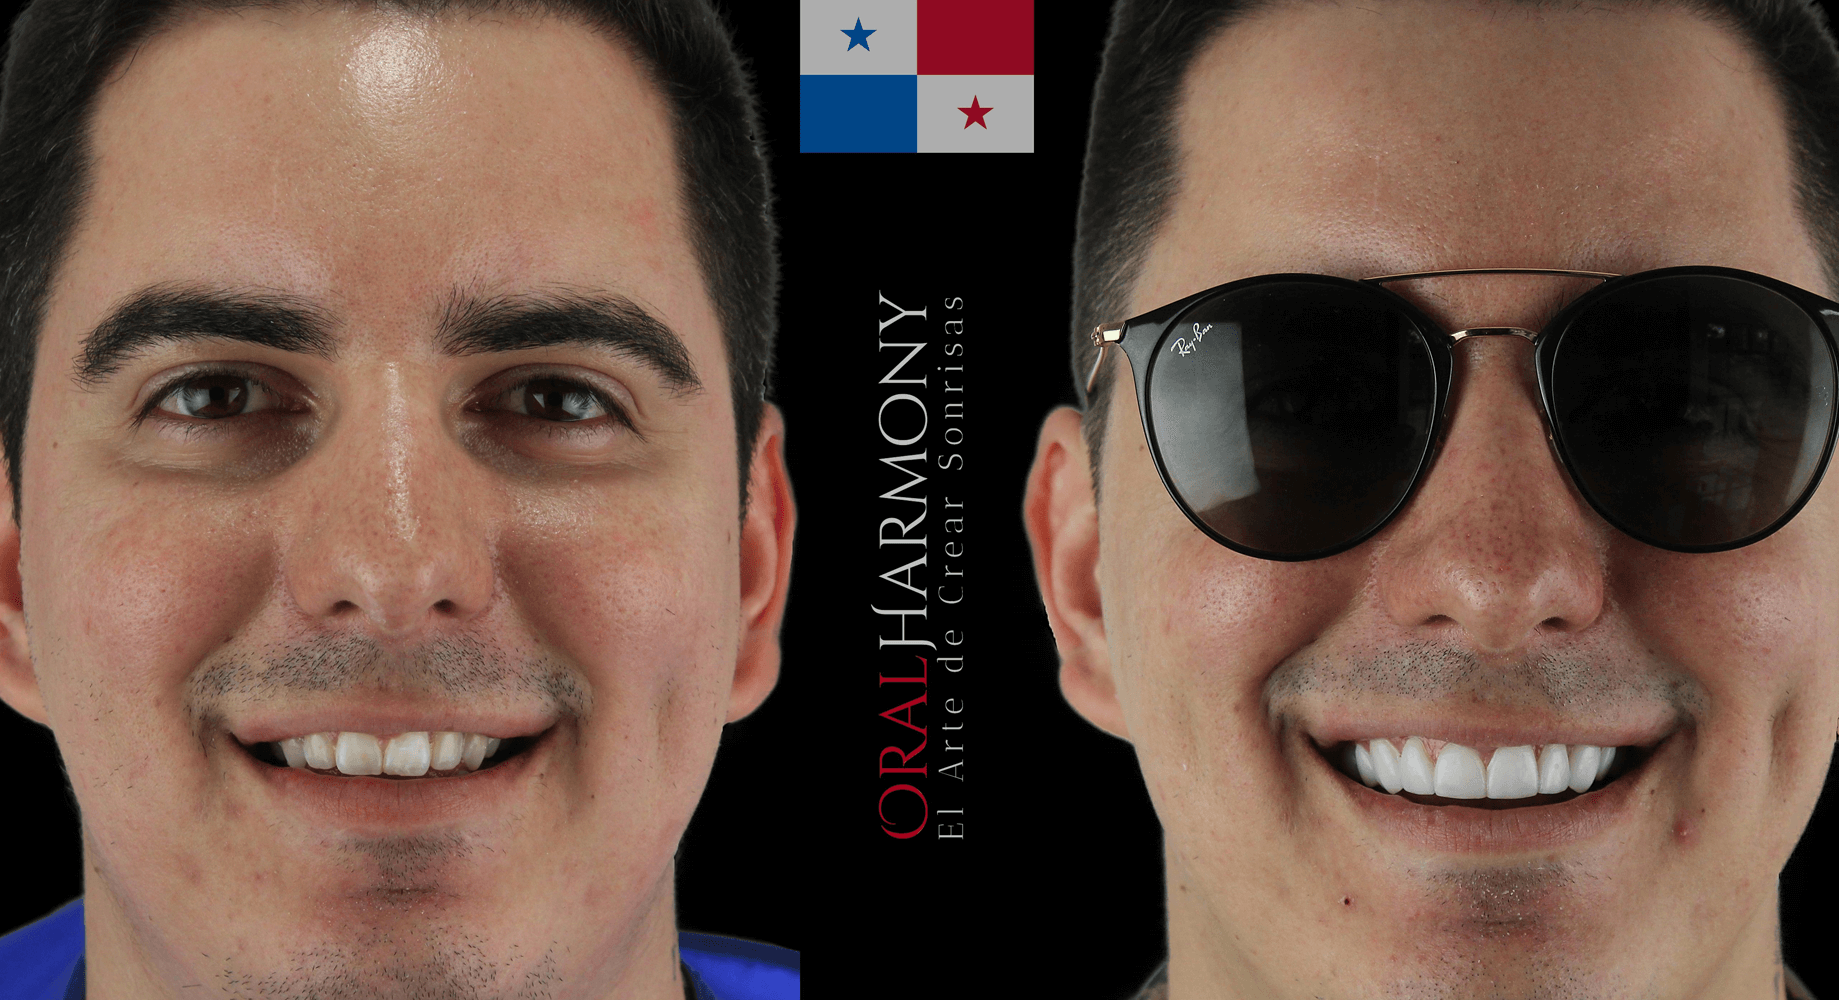 Oral Harmony Smile Makeover - Panama